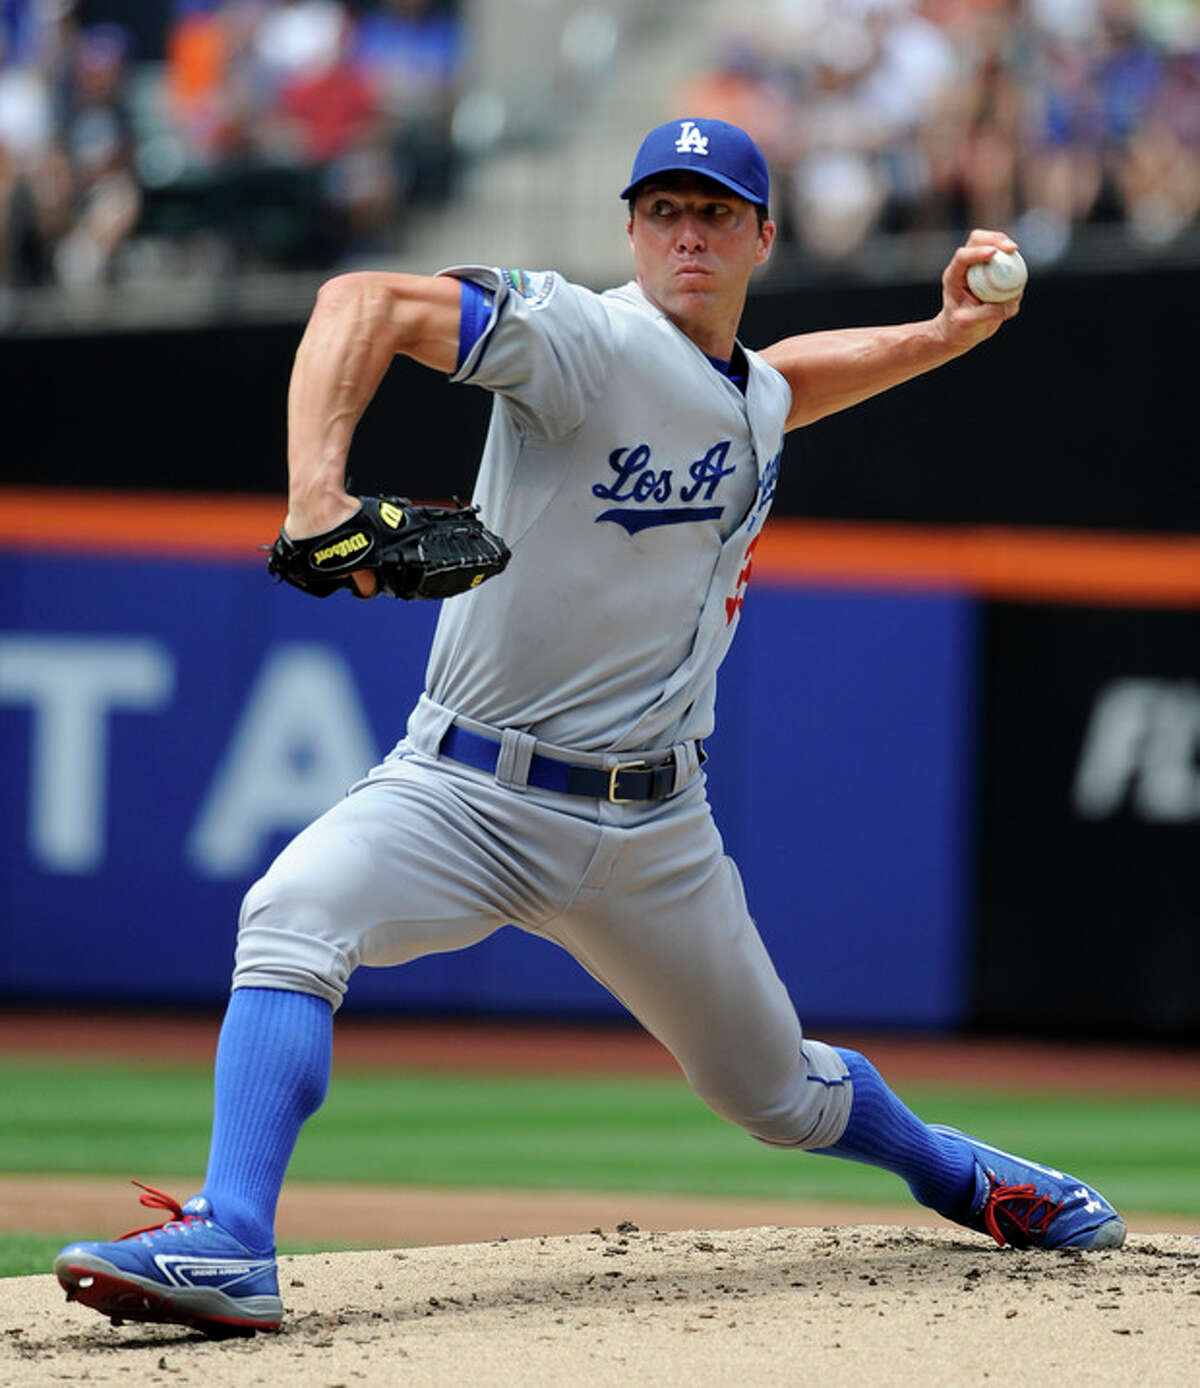 Los Angeles Dodgers starting pitcher Chris Capuano throws against the New York Mets during the second inning of a baseball game on Saturday, July 21, 2012, at Citi Field in New York. (AP Photo/Kathy Kmonicek)